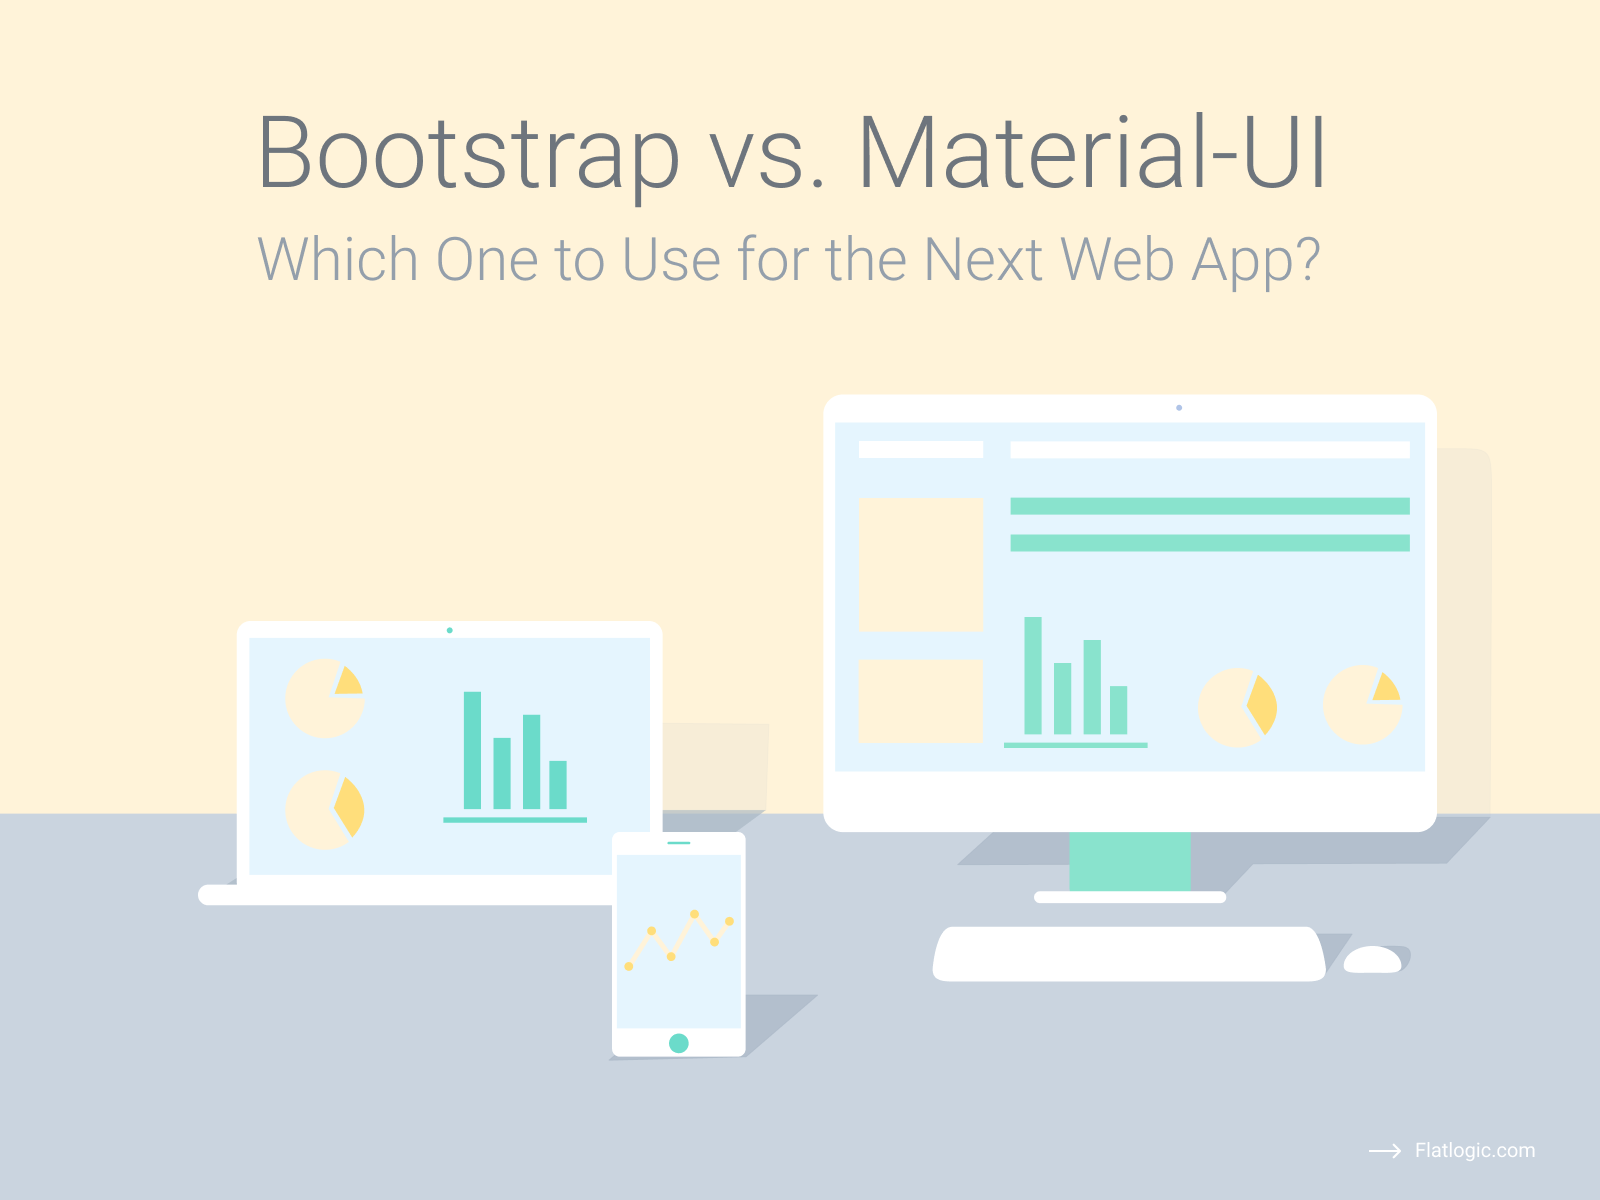 Bootstrap vs. Material-UI. Which One to Use for the Next Web App?